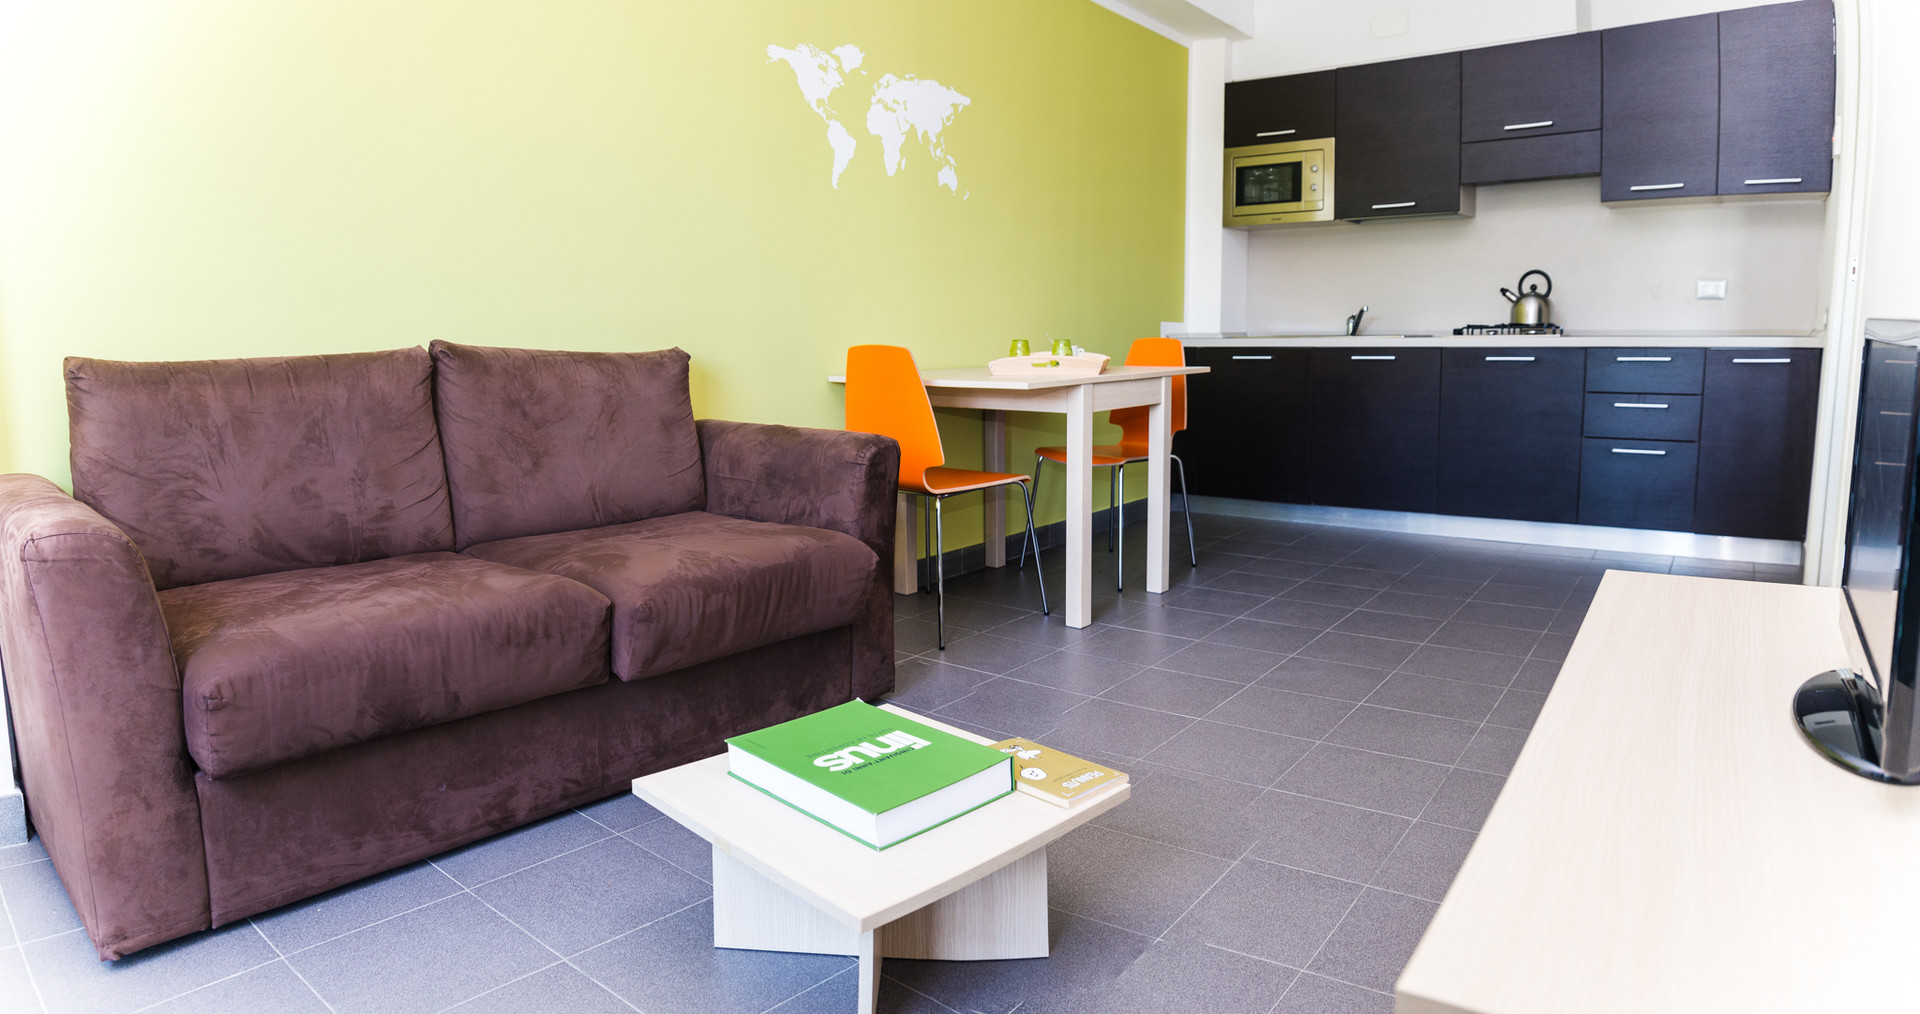 CampusX Executive - a double bedroom apartment a few steps away